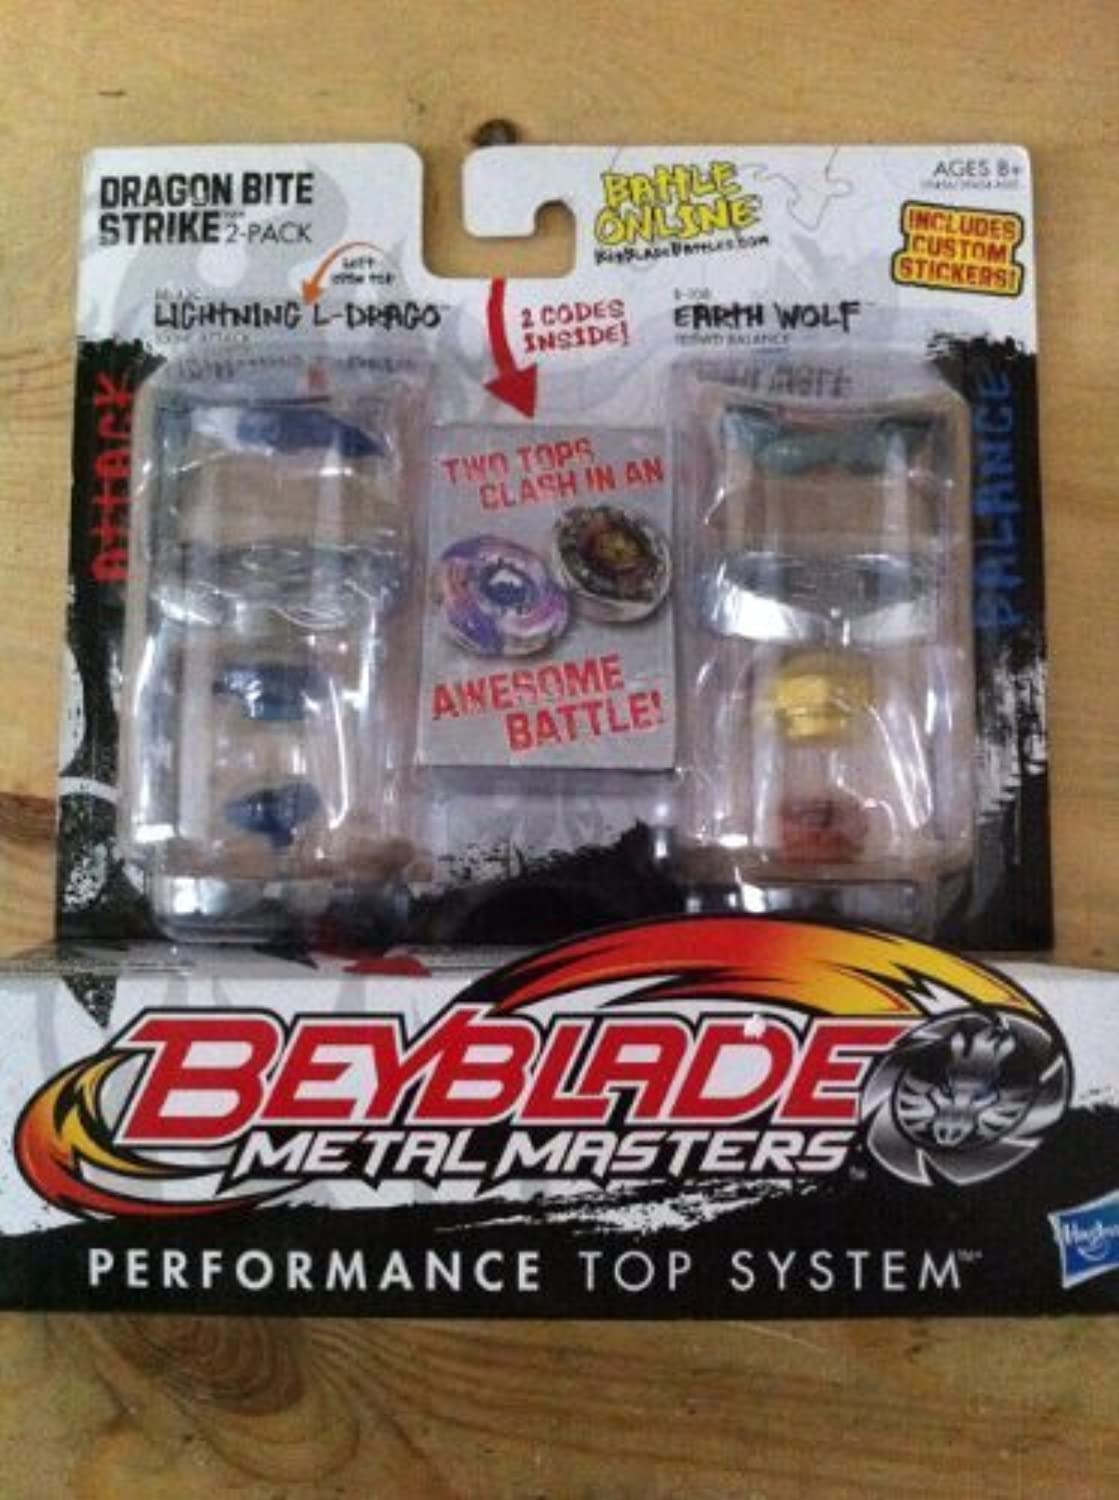 Beyblade, Metal Masters, Exclusive Dragon Bite Strike (Lightning L-Drago #BB-43C and Earth Wolf #B-108) 2-Pack [並行輸入品]